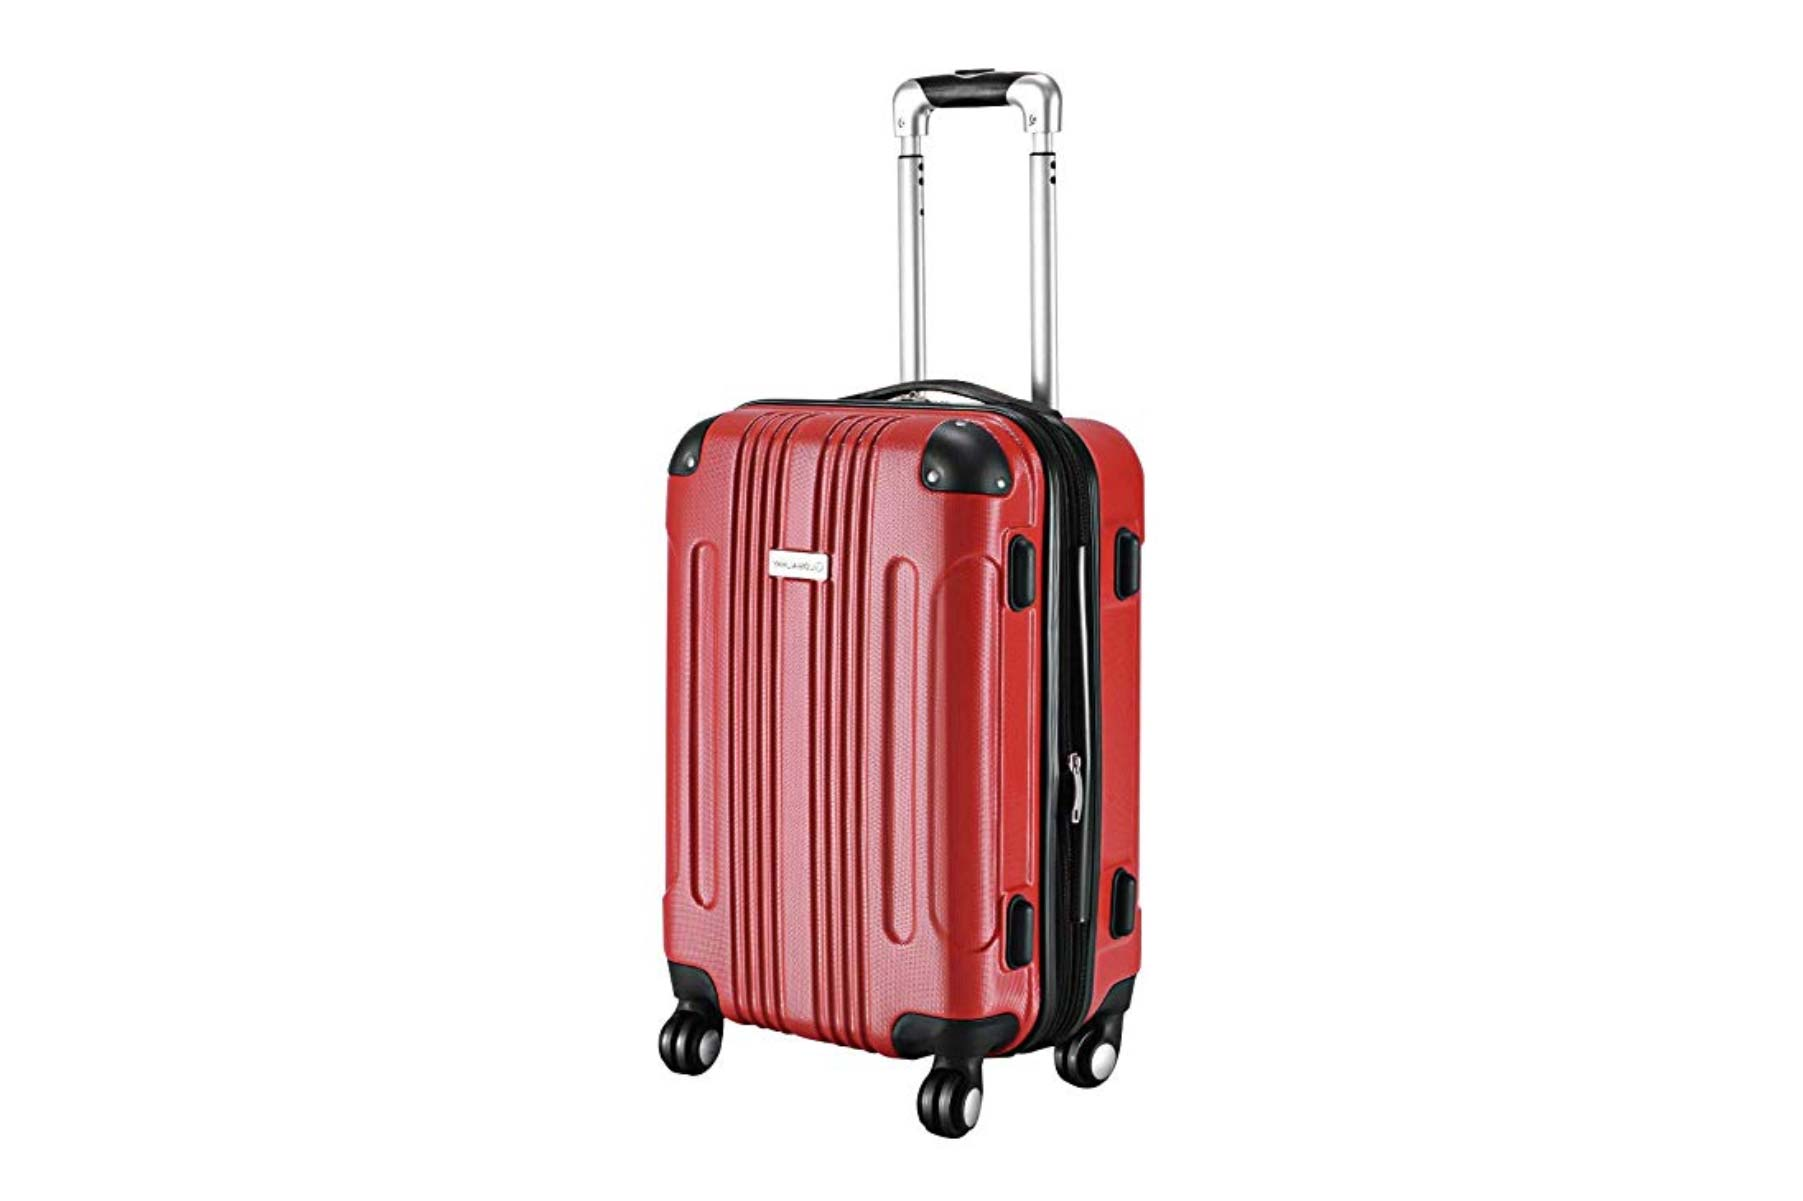 Goplus 20-inch Carry-on Suitcase